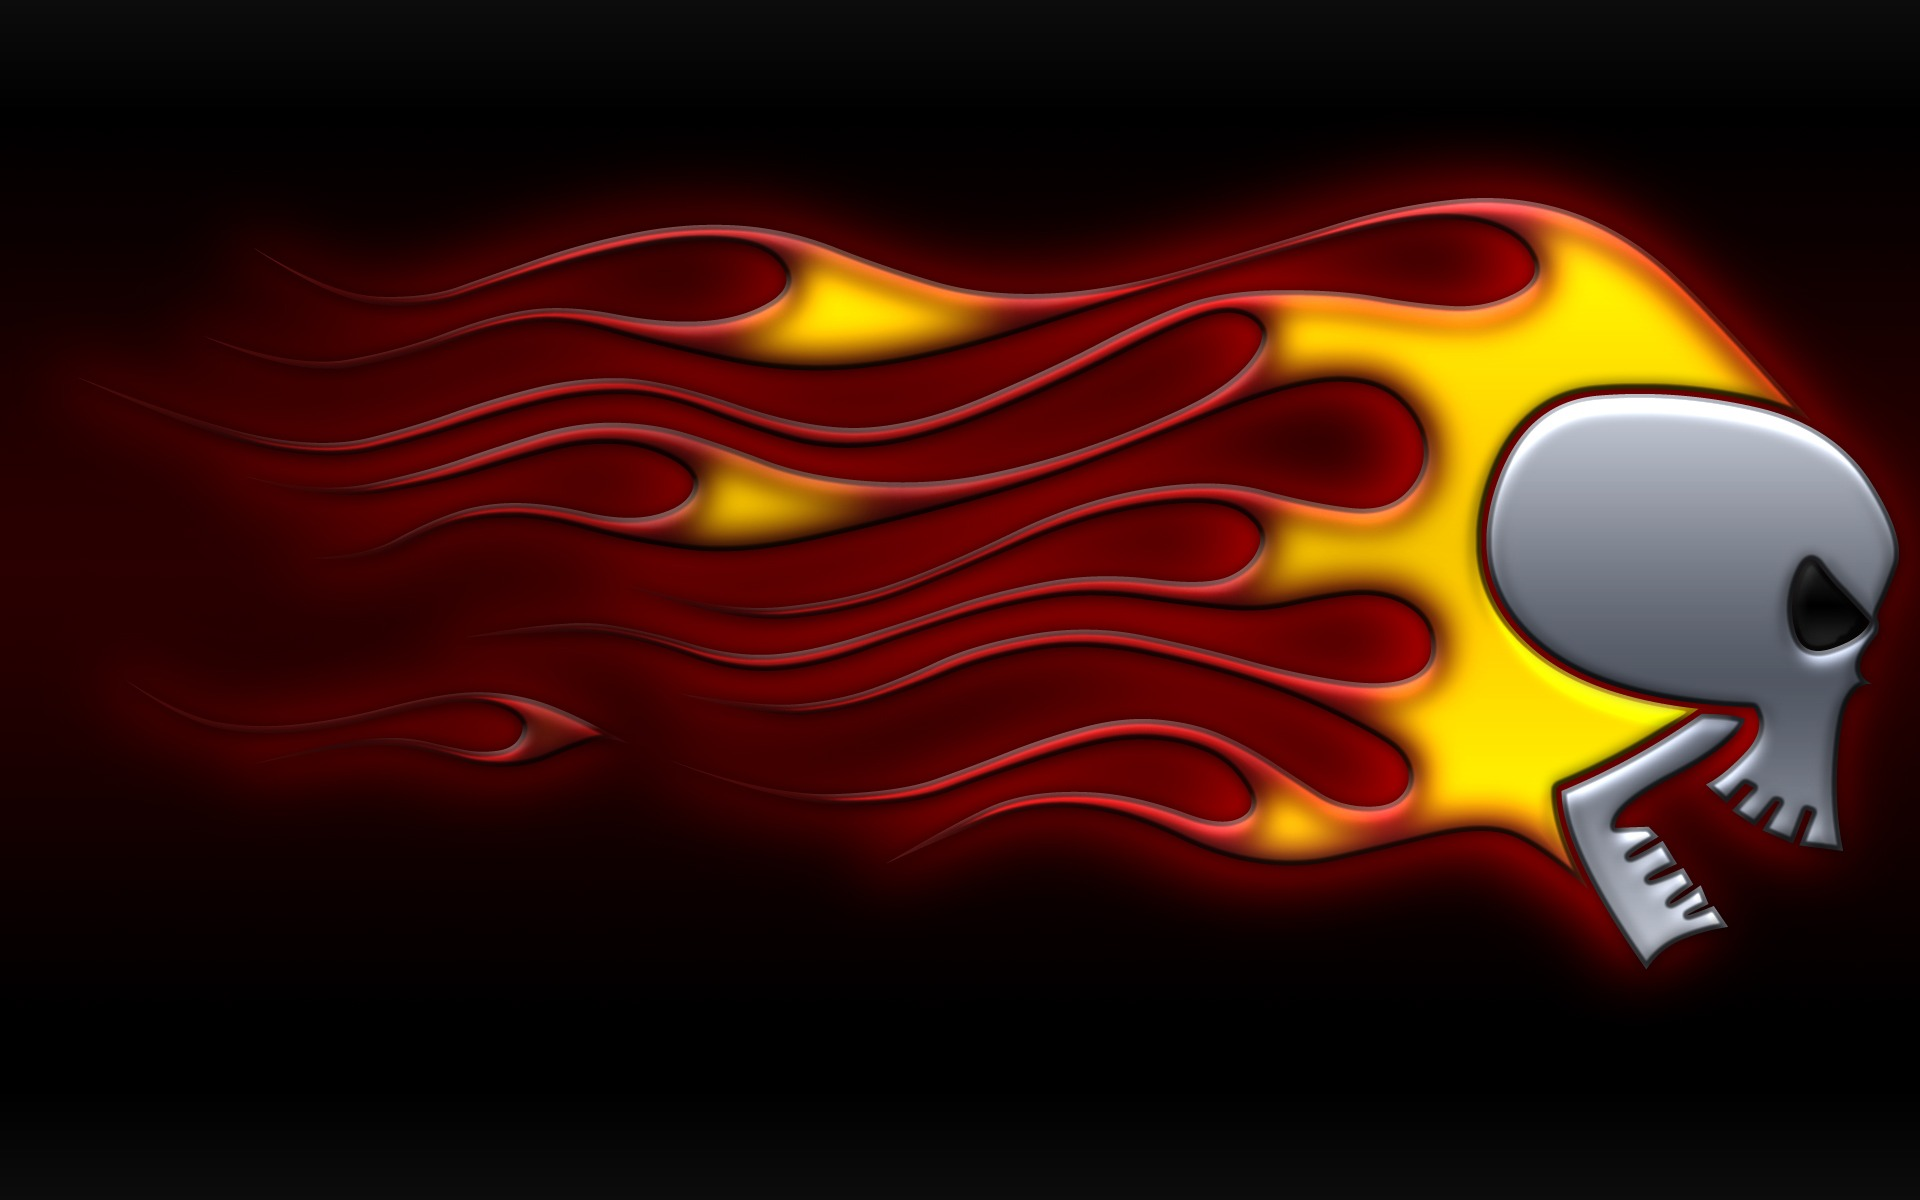 Skull on fire wallpaper abstract 3d wallpapers in jpg format for skull on fire wallpaper abstract 3d wallpapers voltagebd Choice Image